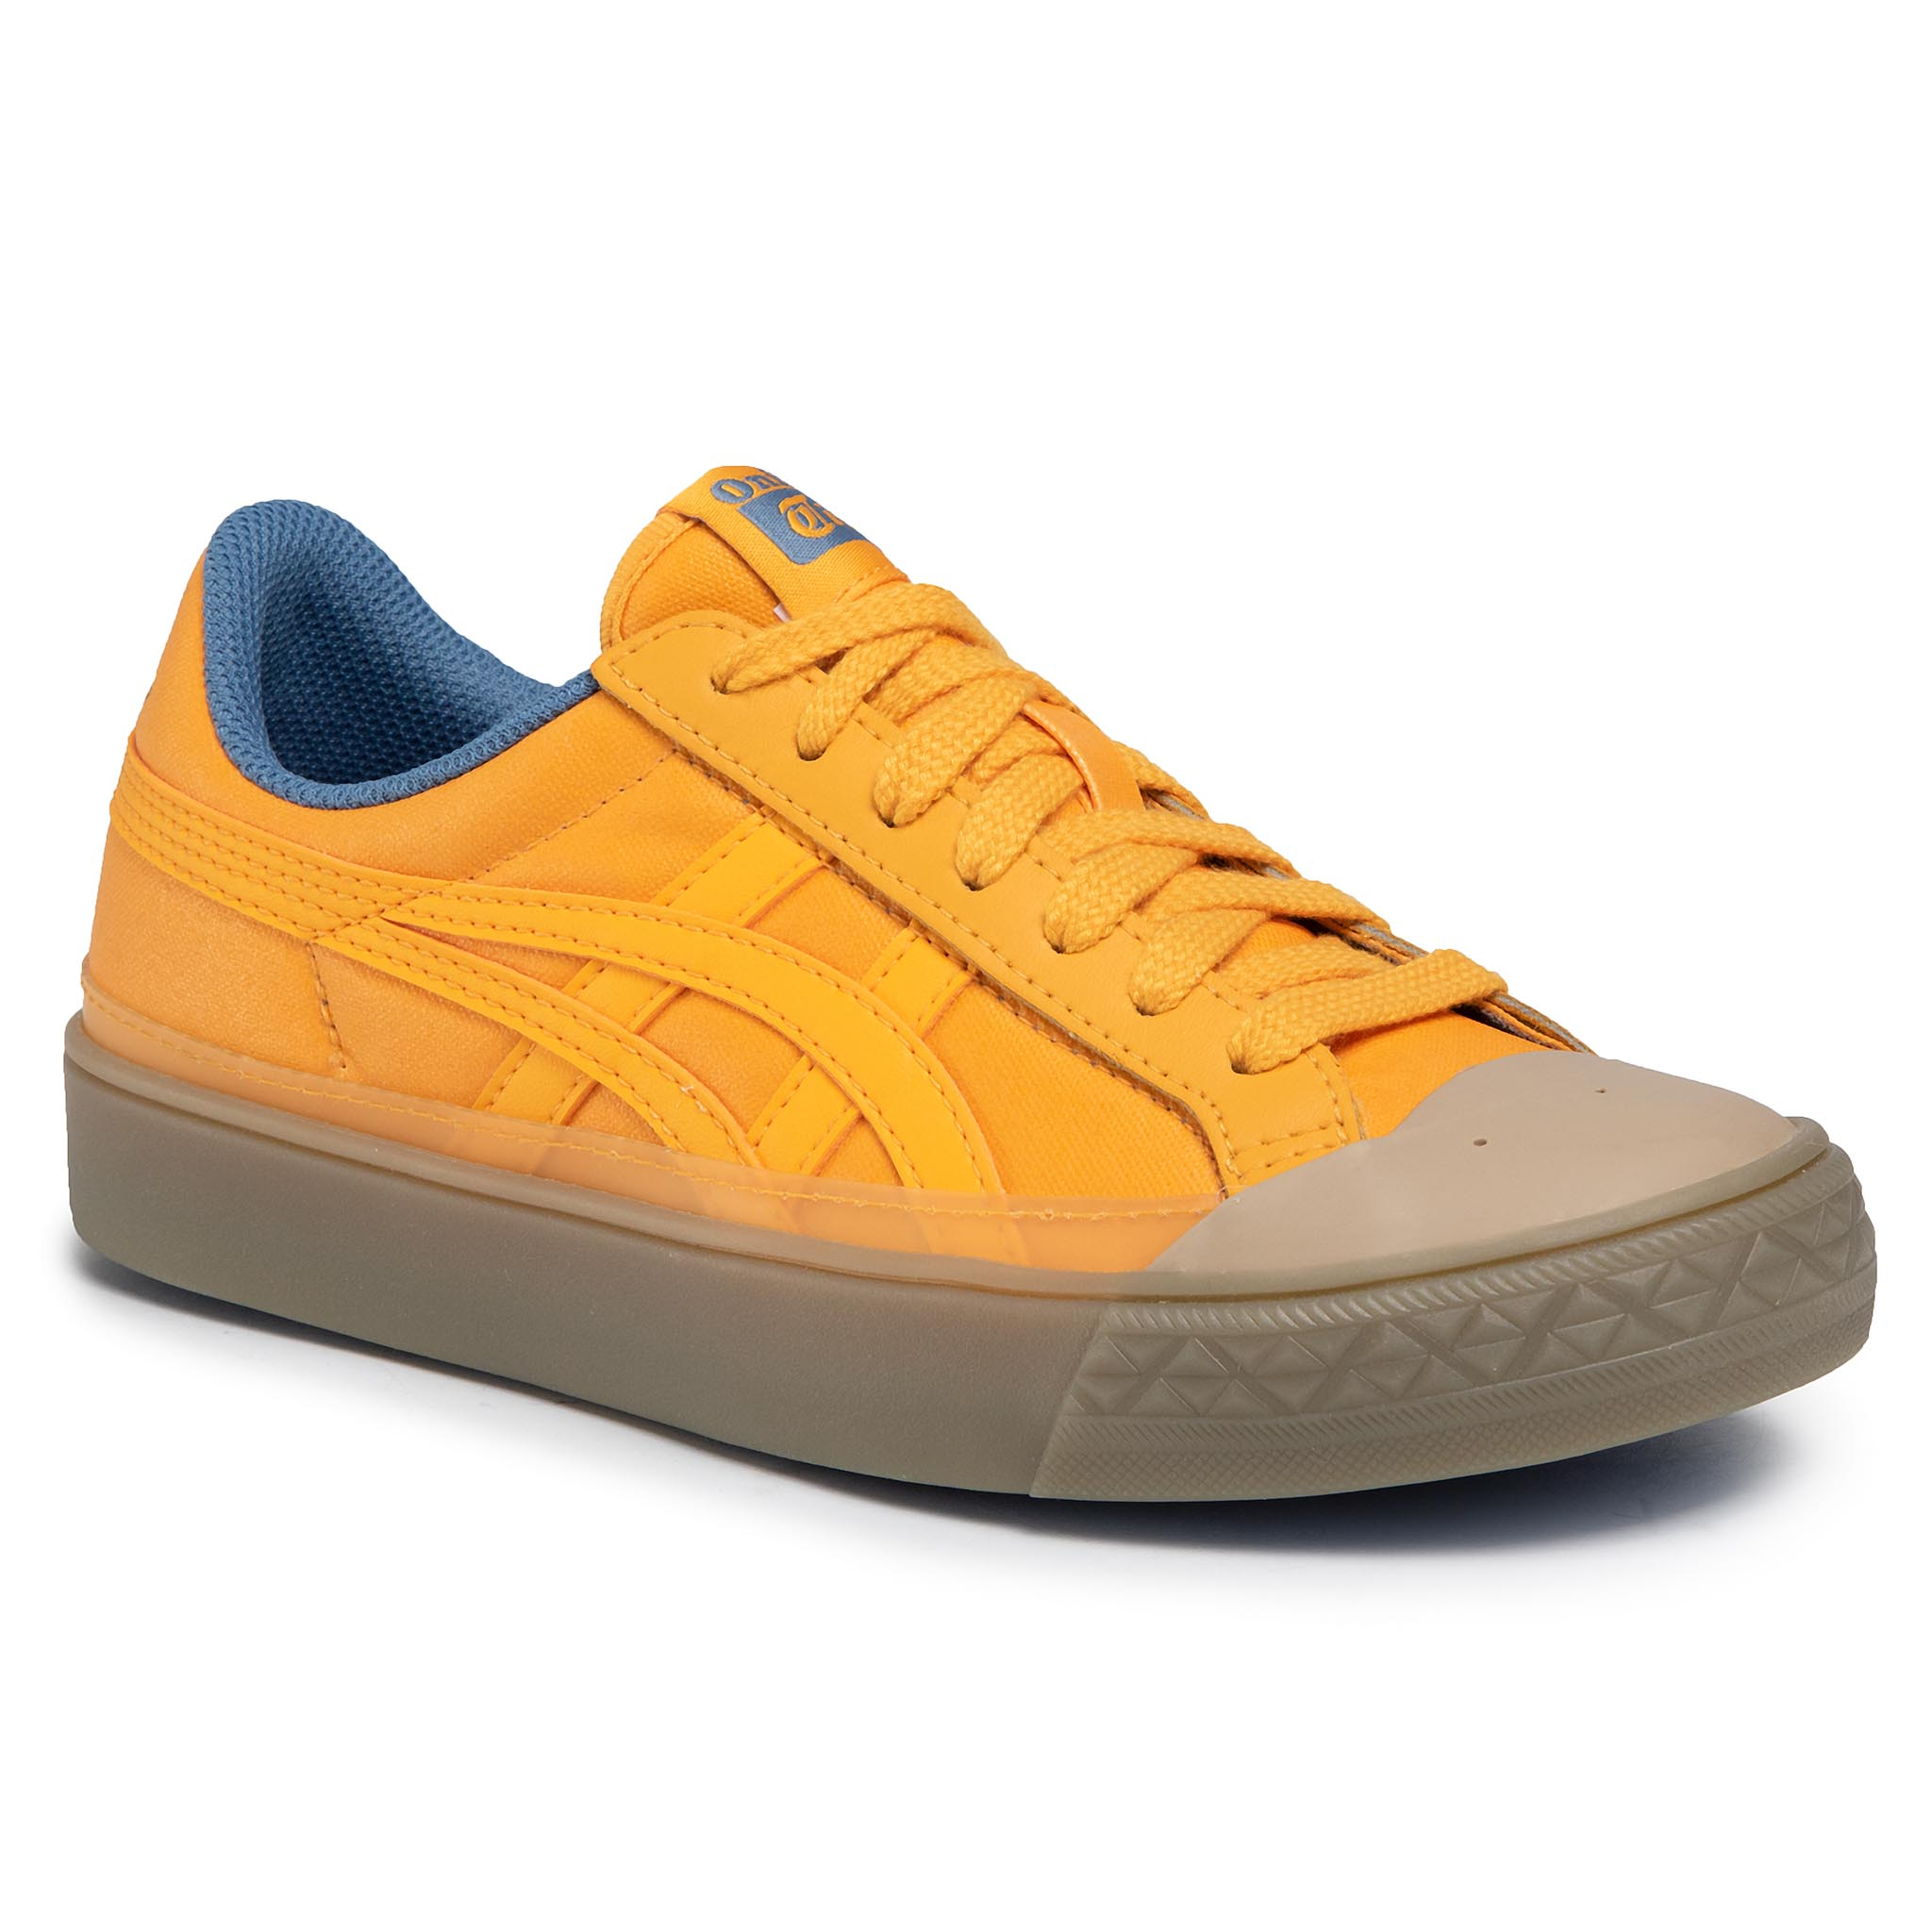 Teniși ONITSUKA TIGER - Fabre Classic Lo 1183A717 Tiger Yellow/Tiger Yellow 750